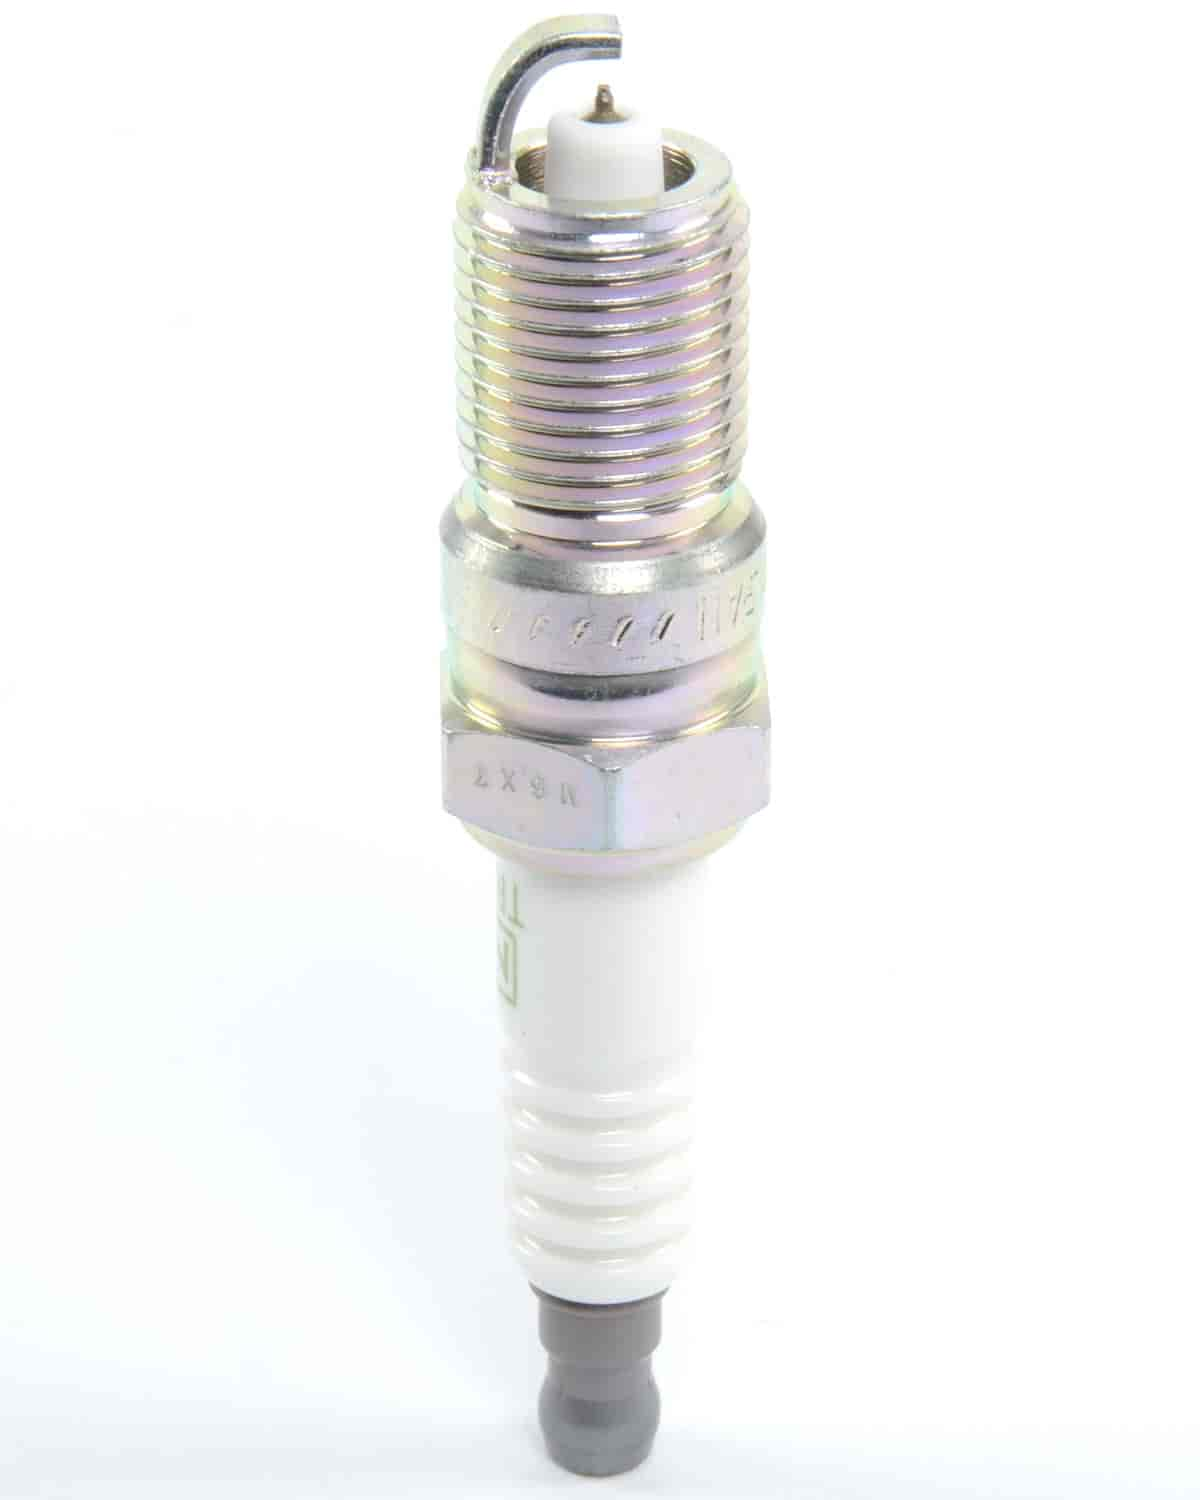 Tr55gp - Spark plug cross reference - CAR INFORMATION AND